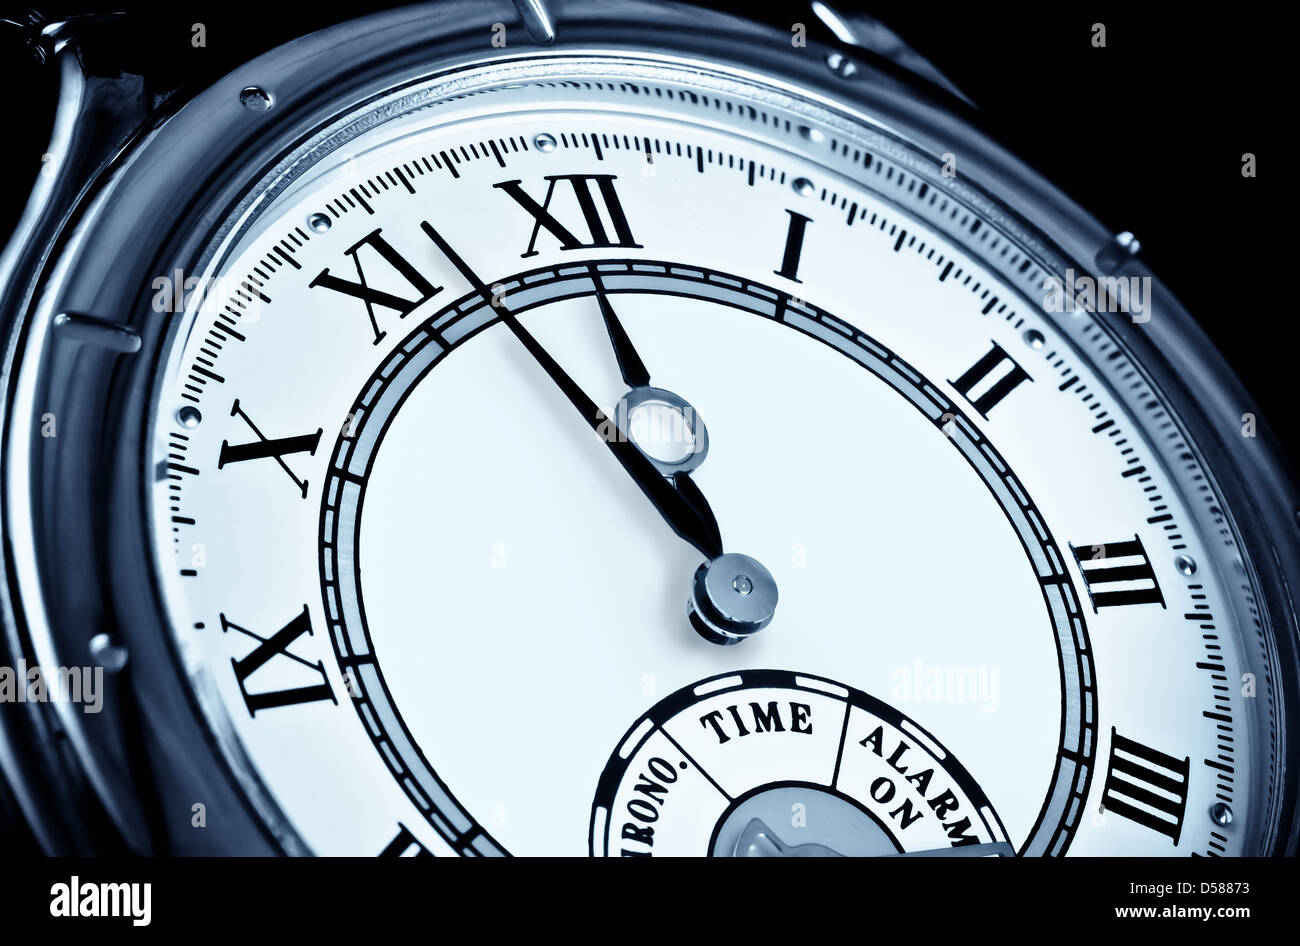 Analog wrist watch closeup at five to twelve - Stock Image